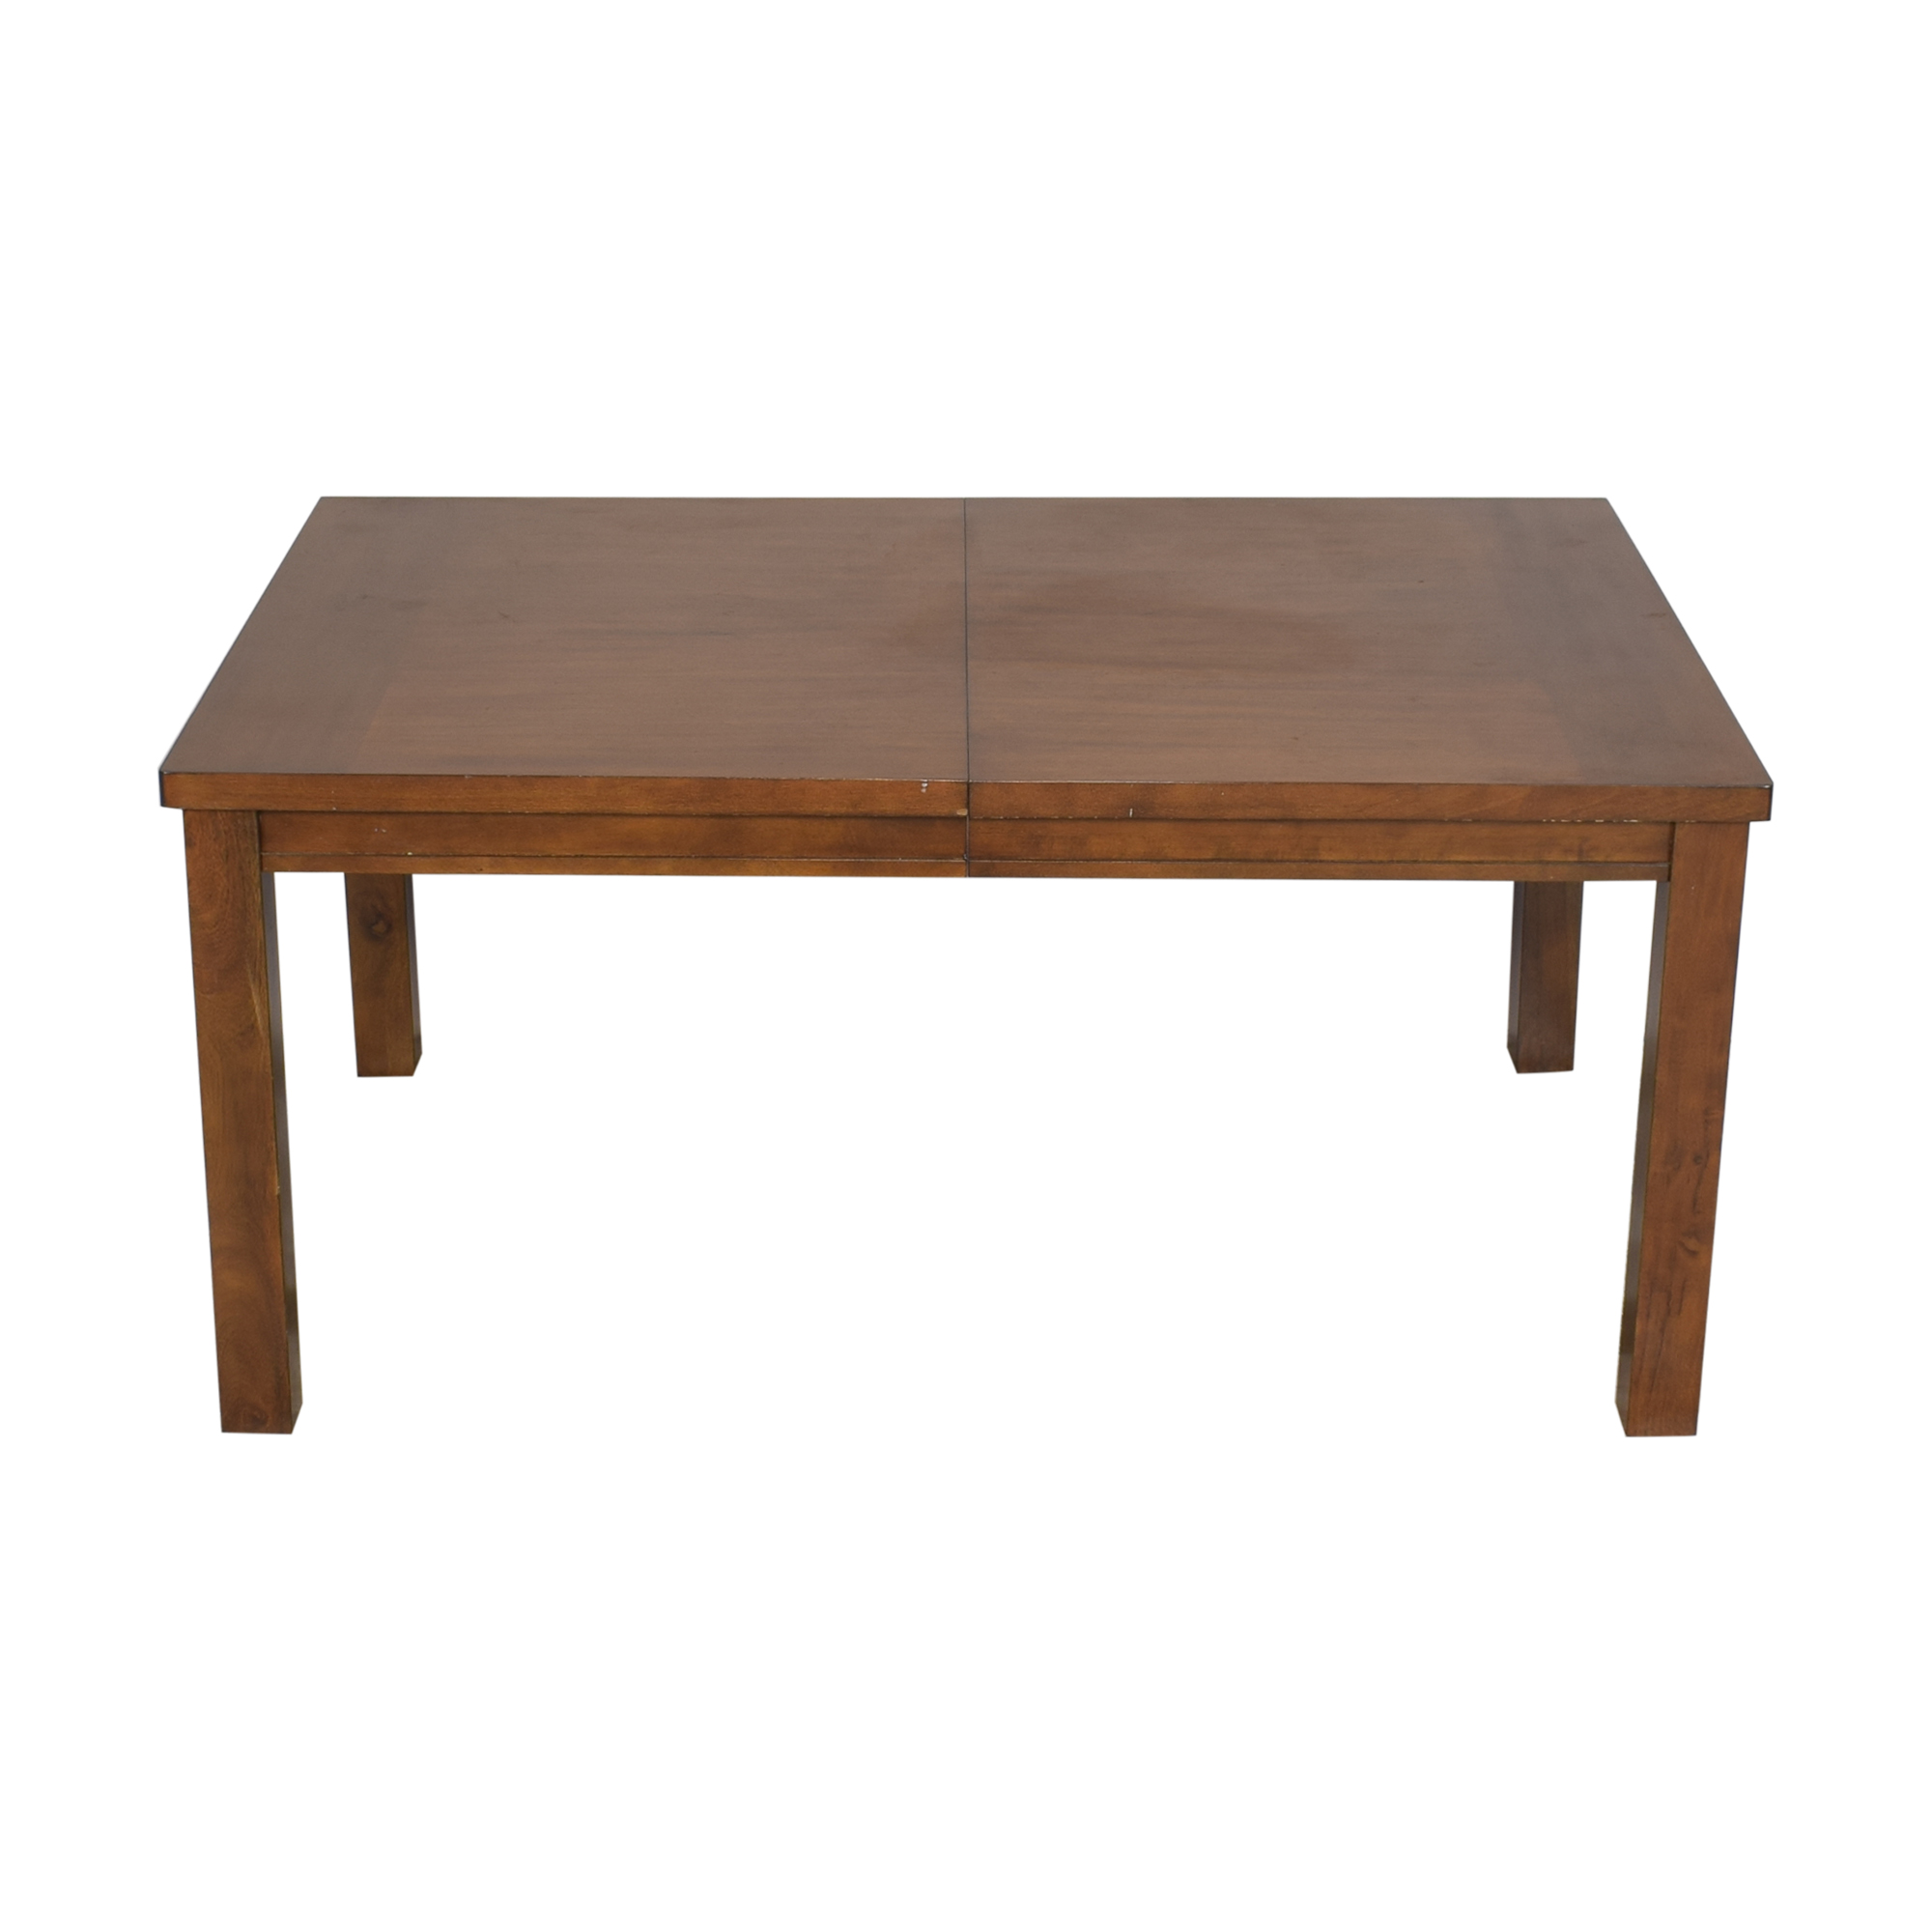 buy Macy's Extendable Rectangle Dining Table Macy's Dinner Tables